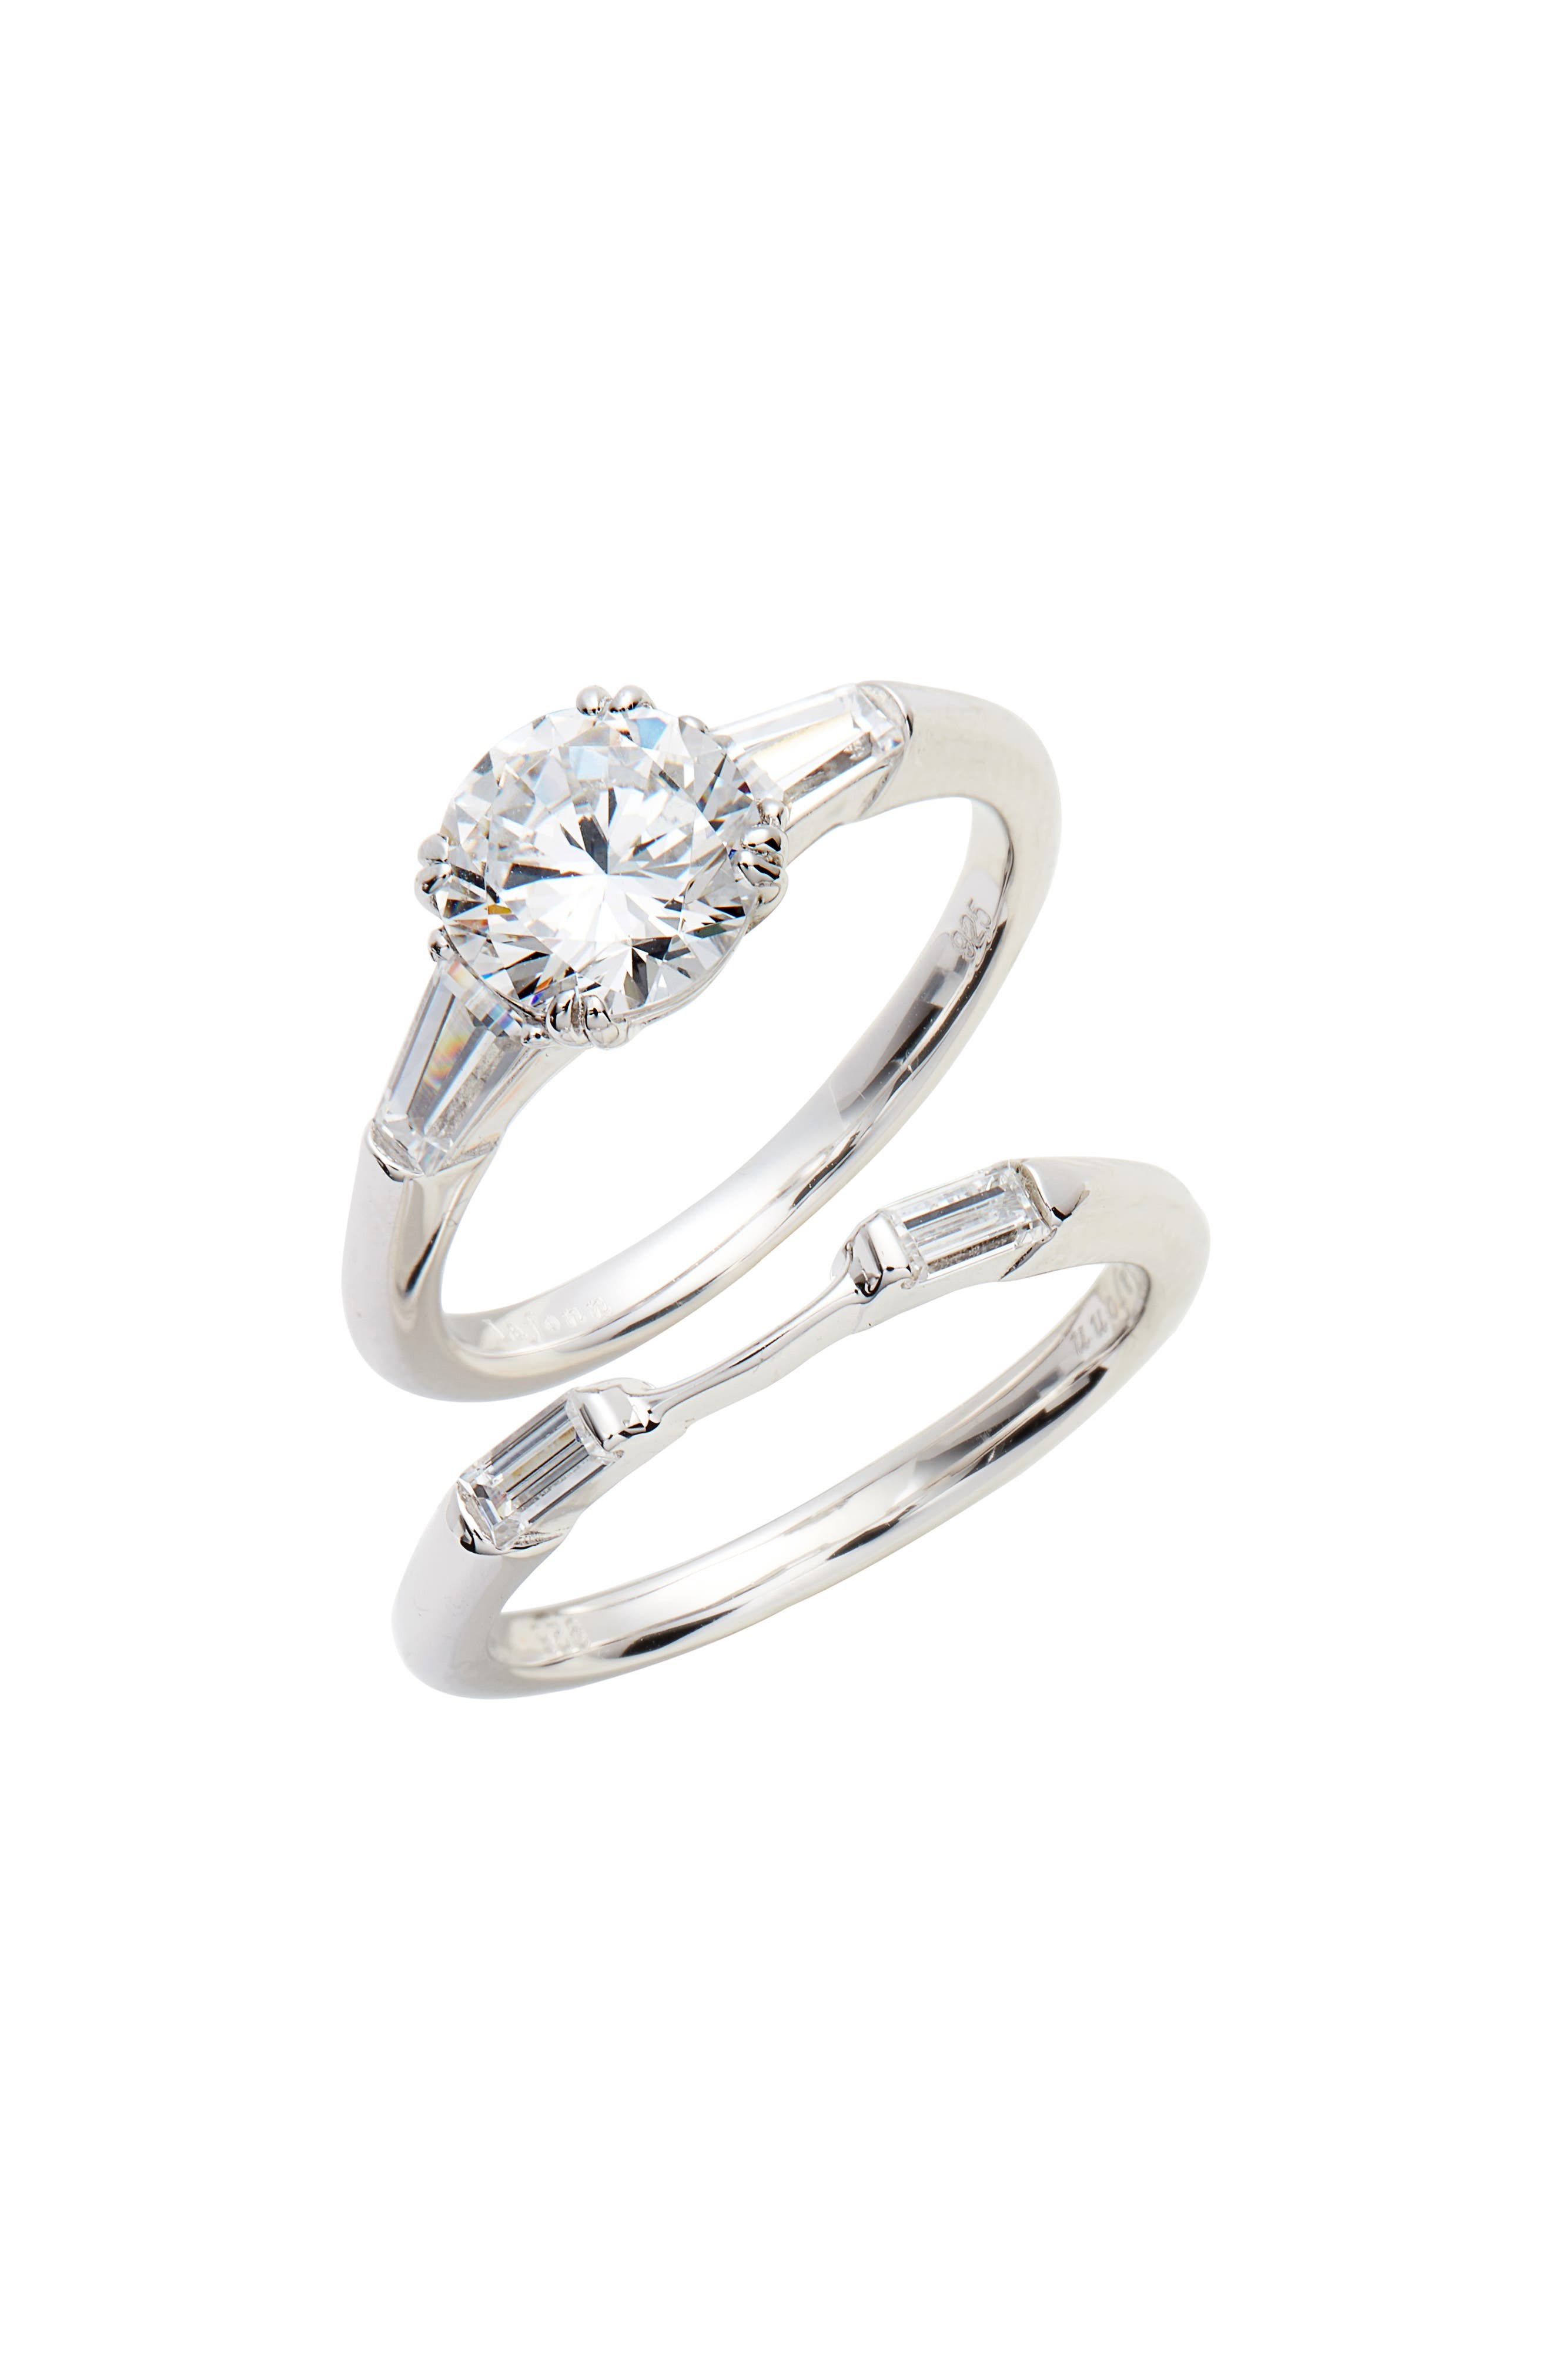 3-Stone Ring,                             Main thumbnail 1, color,                             Silver/ Clear